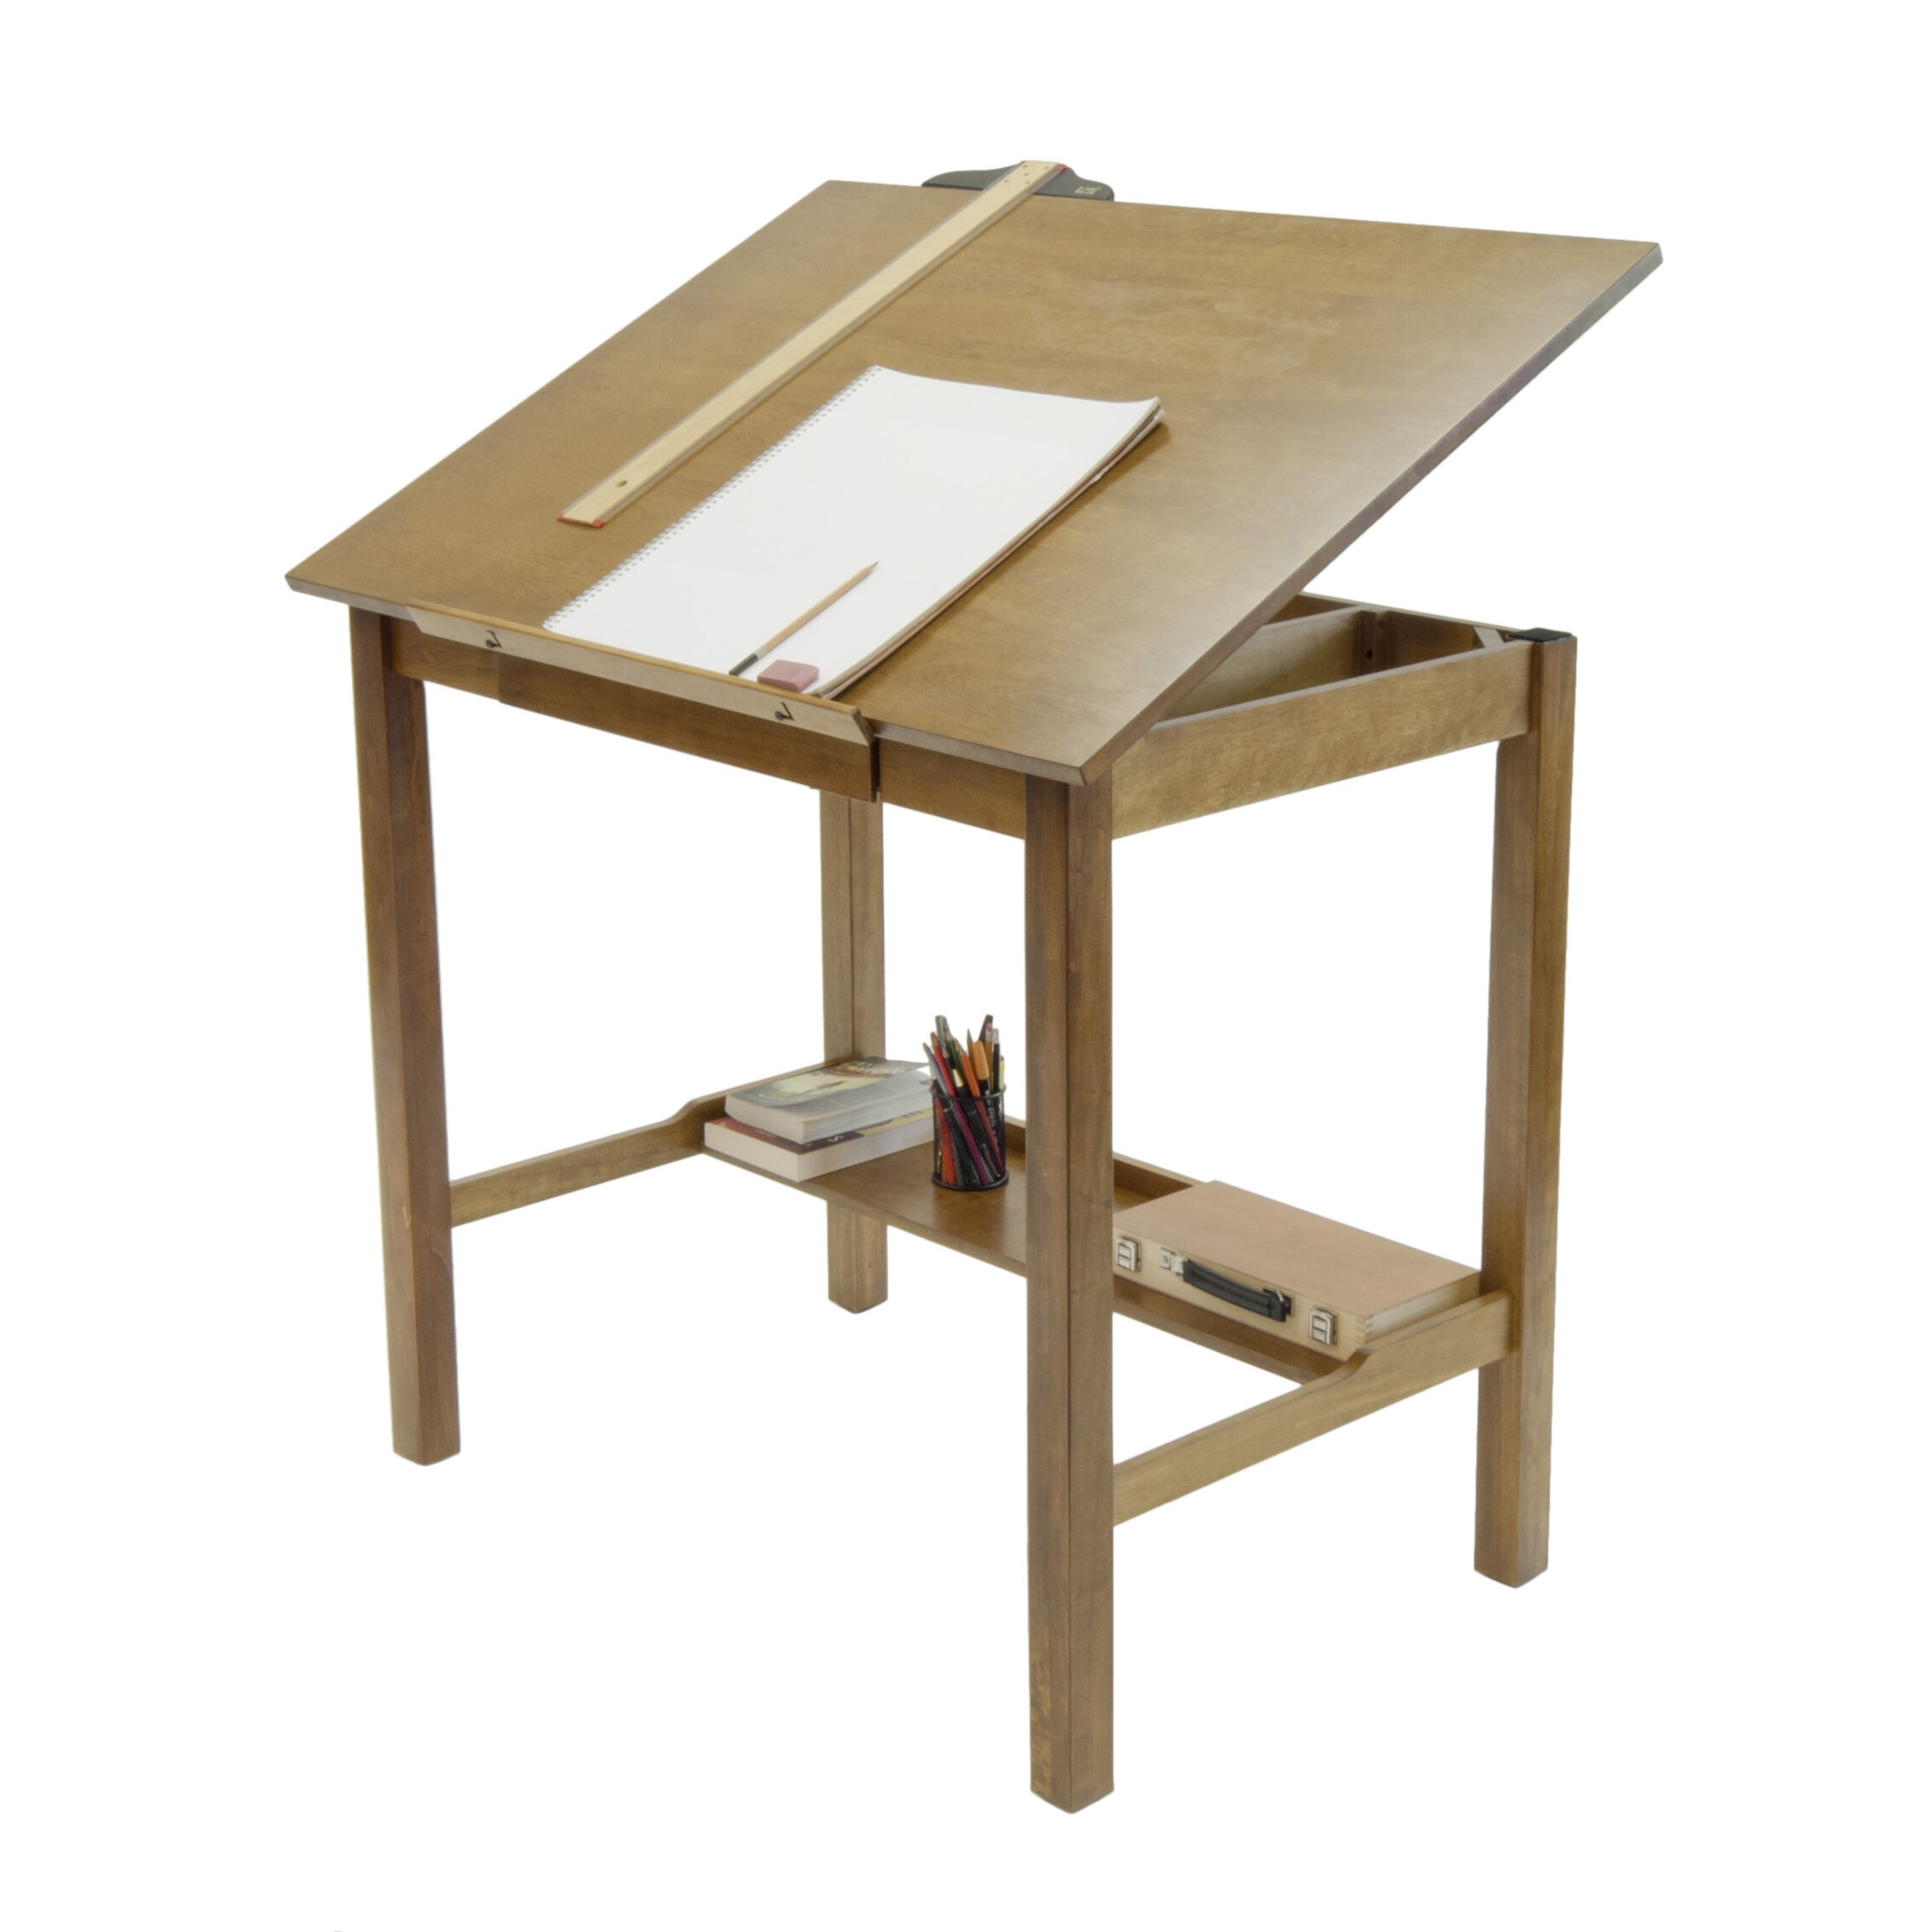 Drafting table dimensions - Studio Designs Americana Drafting Table